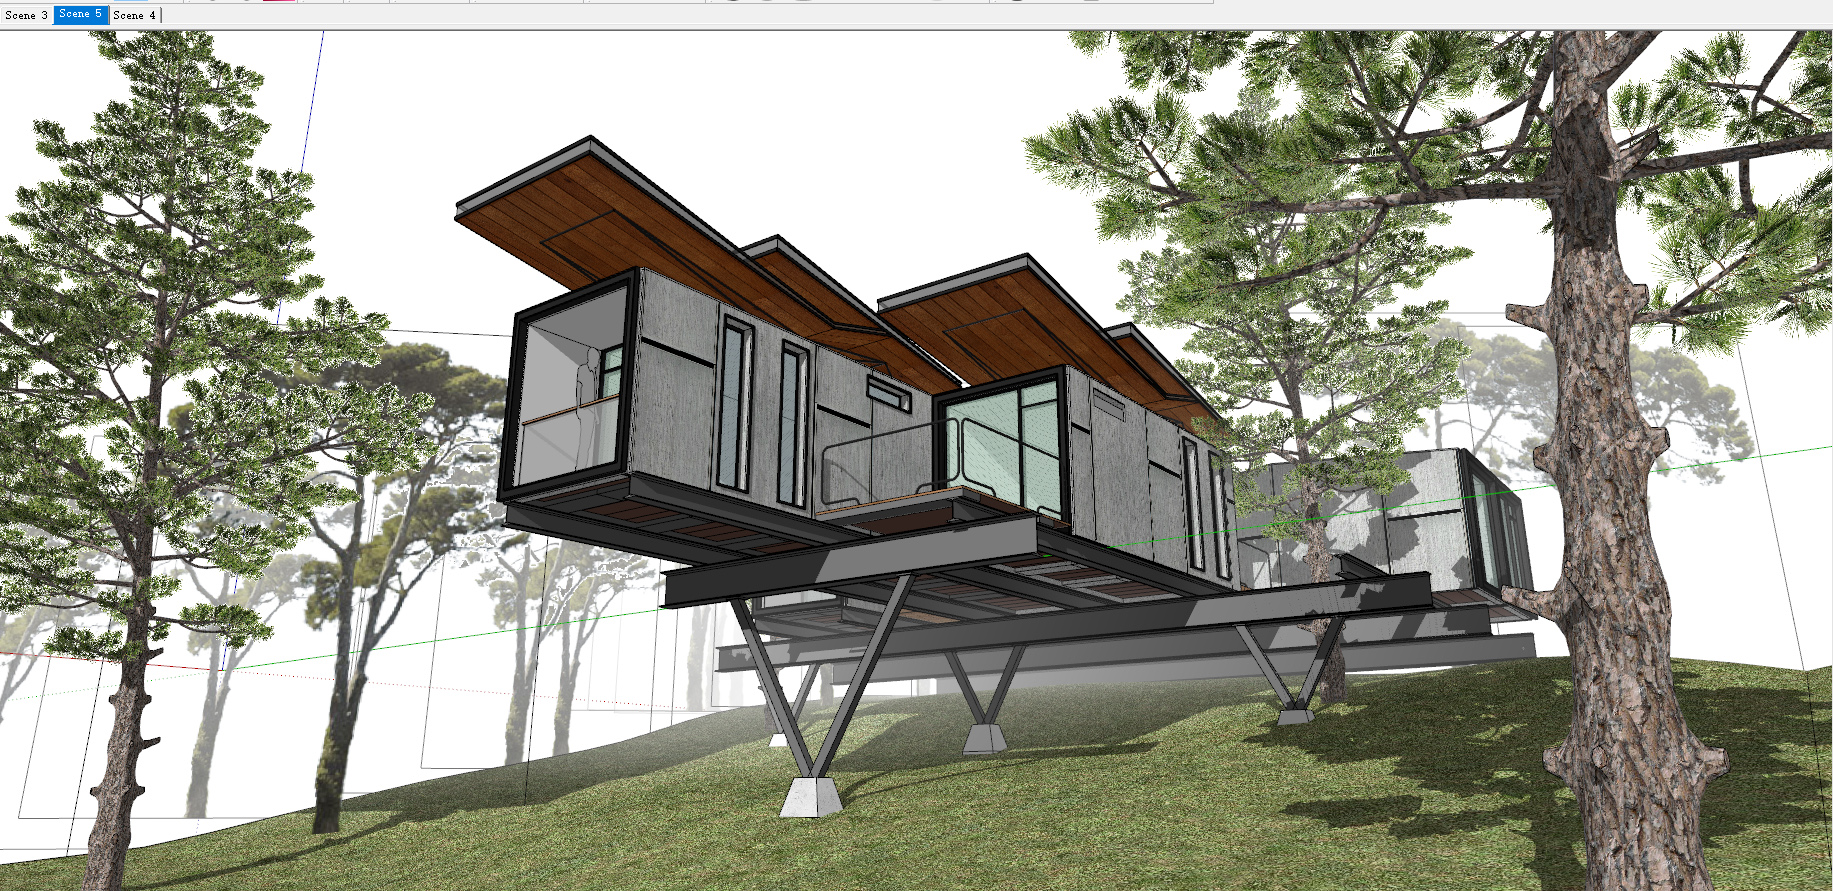 V-Ray For Sketchup To Make A Work Container Cabin 1